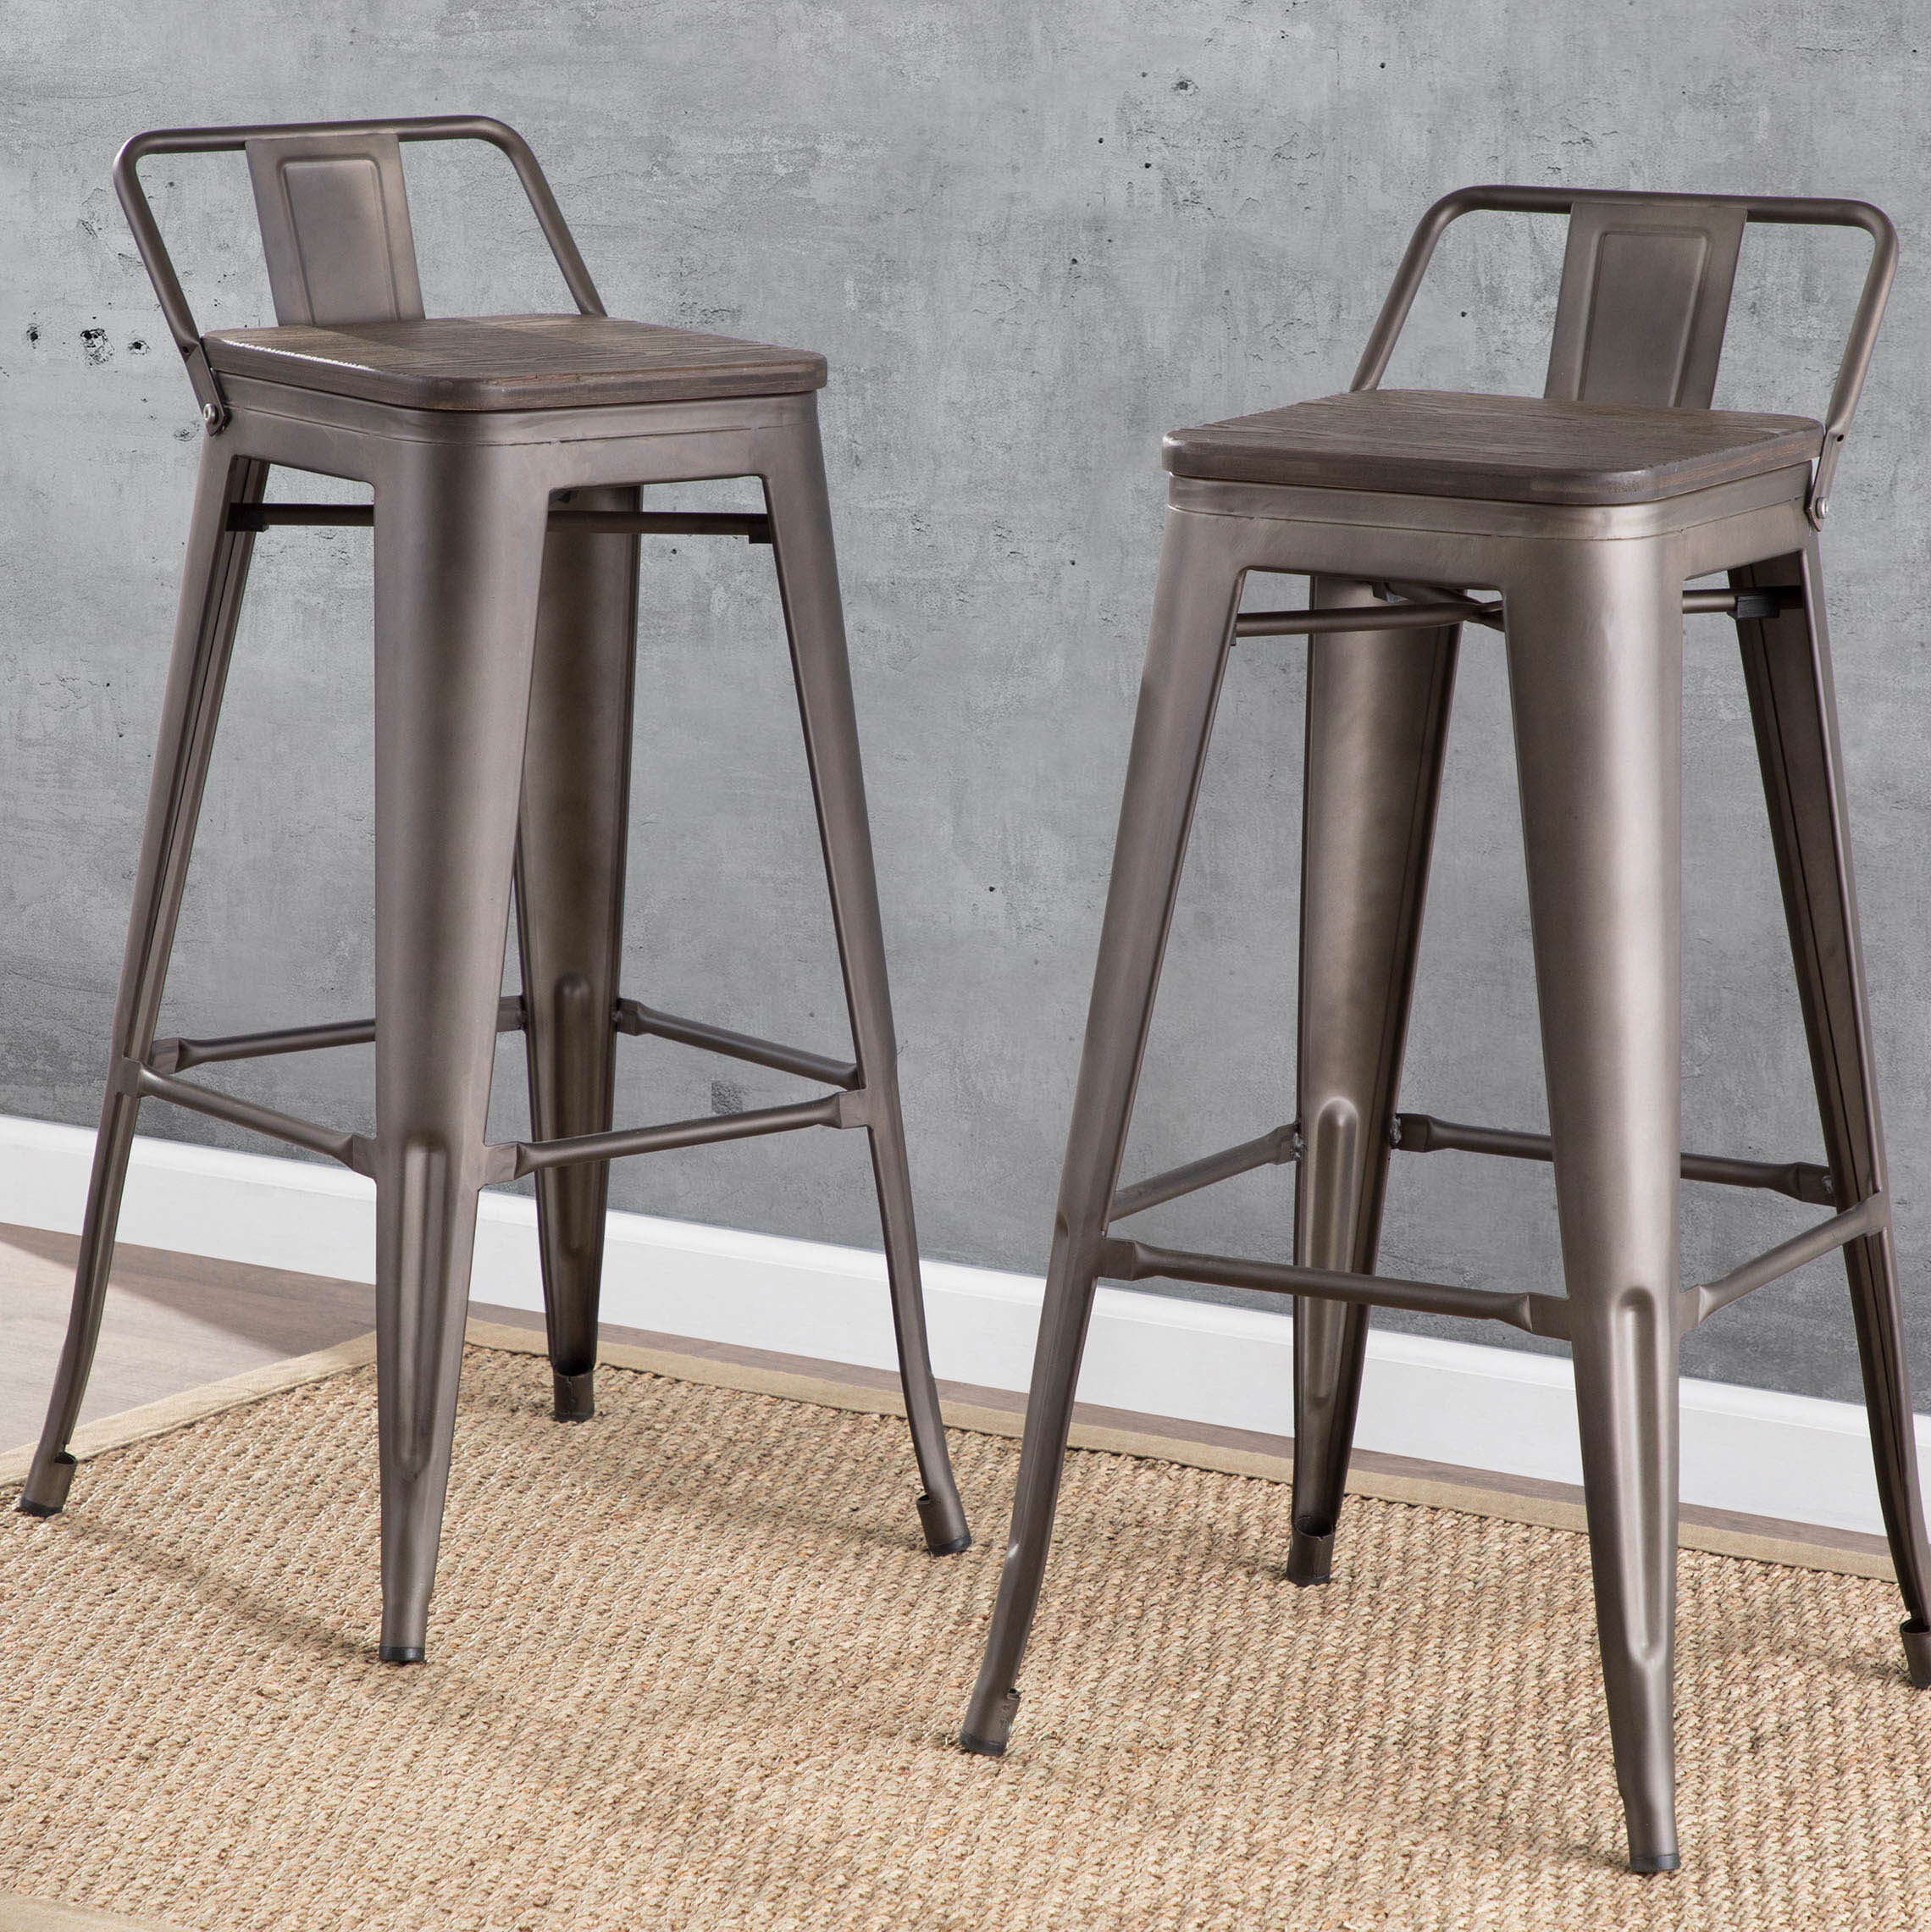 Image of: Distressed Metal Low Back Bar Stools Counter Stools Wayfair